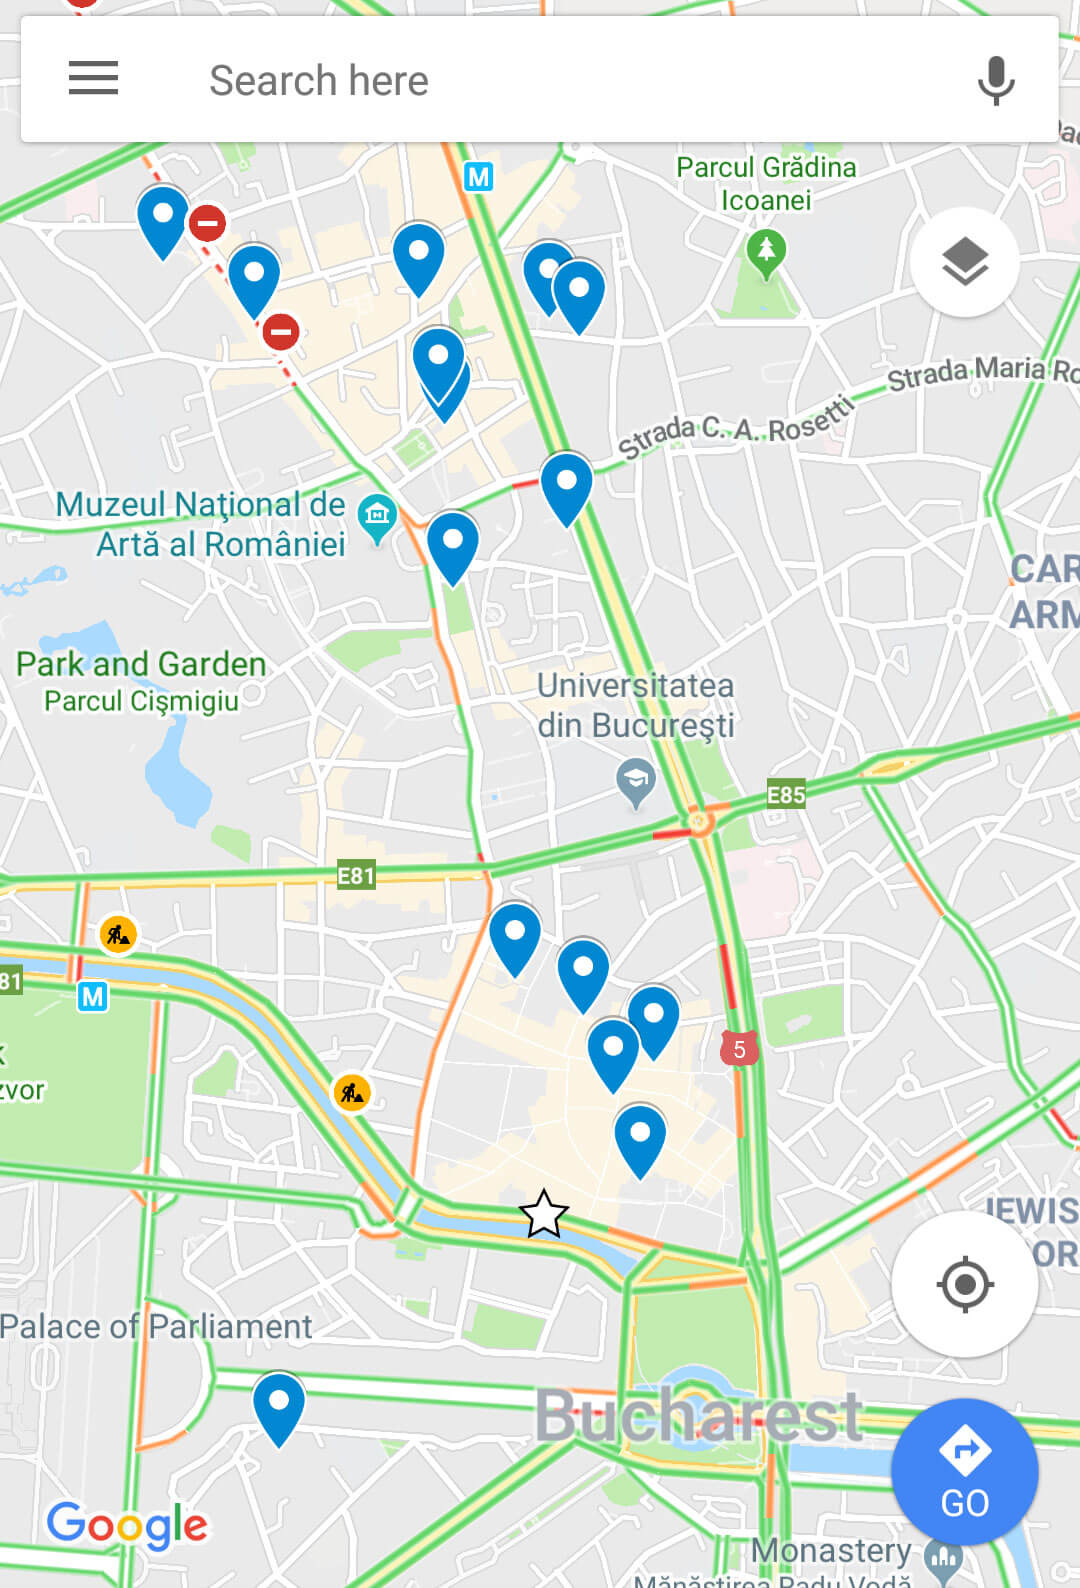 I love to make custom Google Maps before a trip. This map of Bucharest's key city centre sights makes them look spread out but in reality it's an easily walkable city.